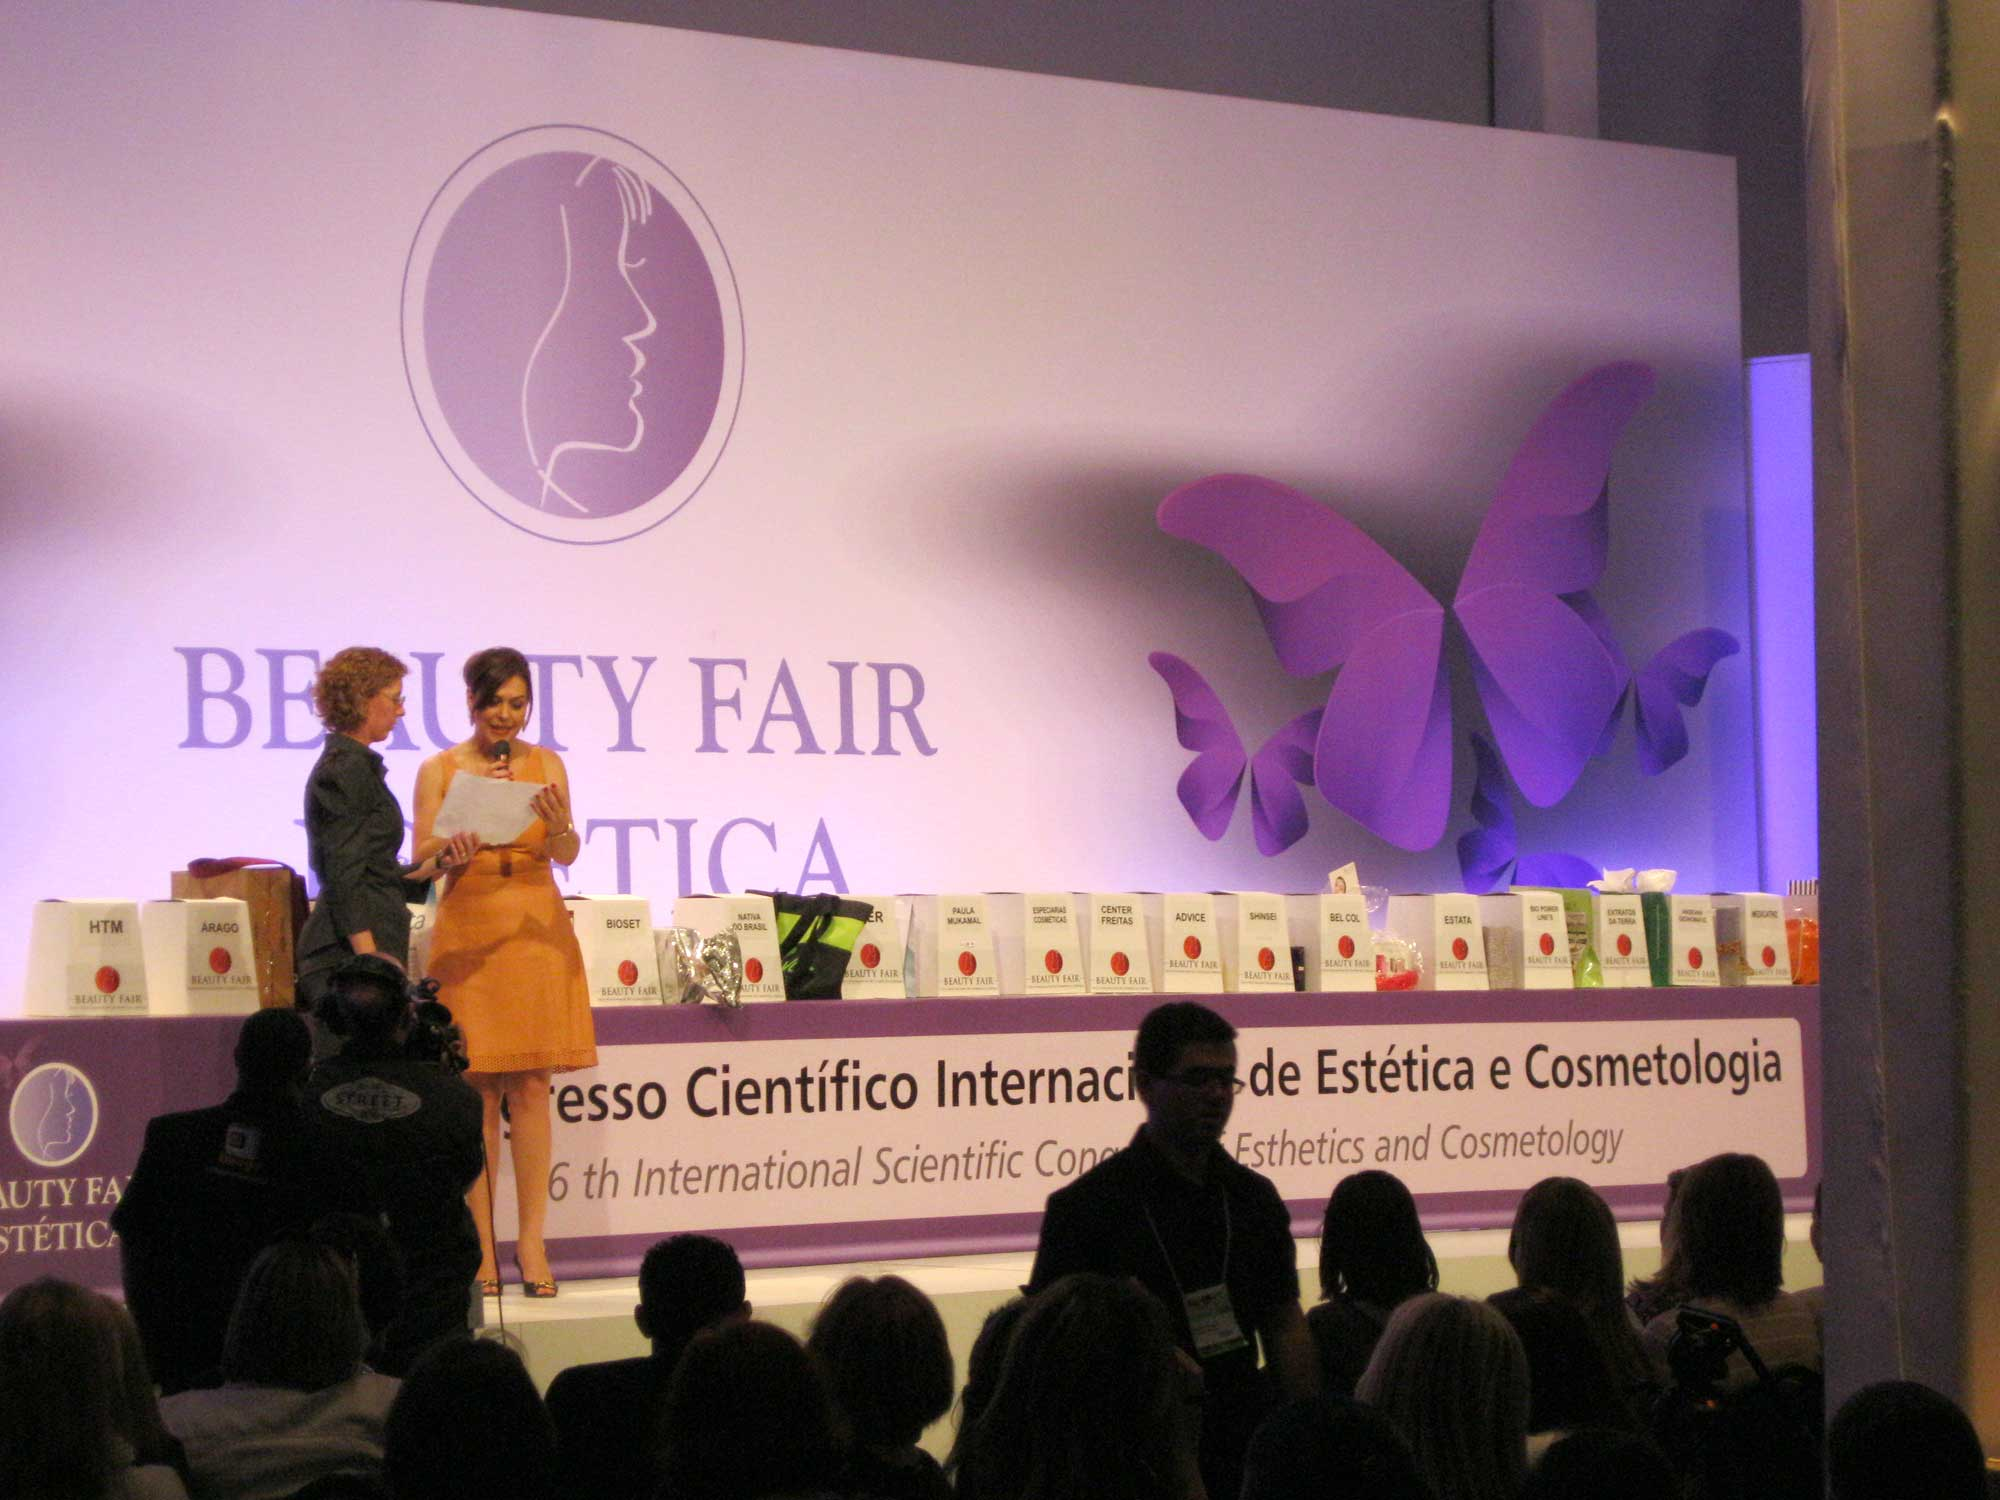 Feira-Beauty-Fair-2011_56